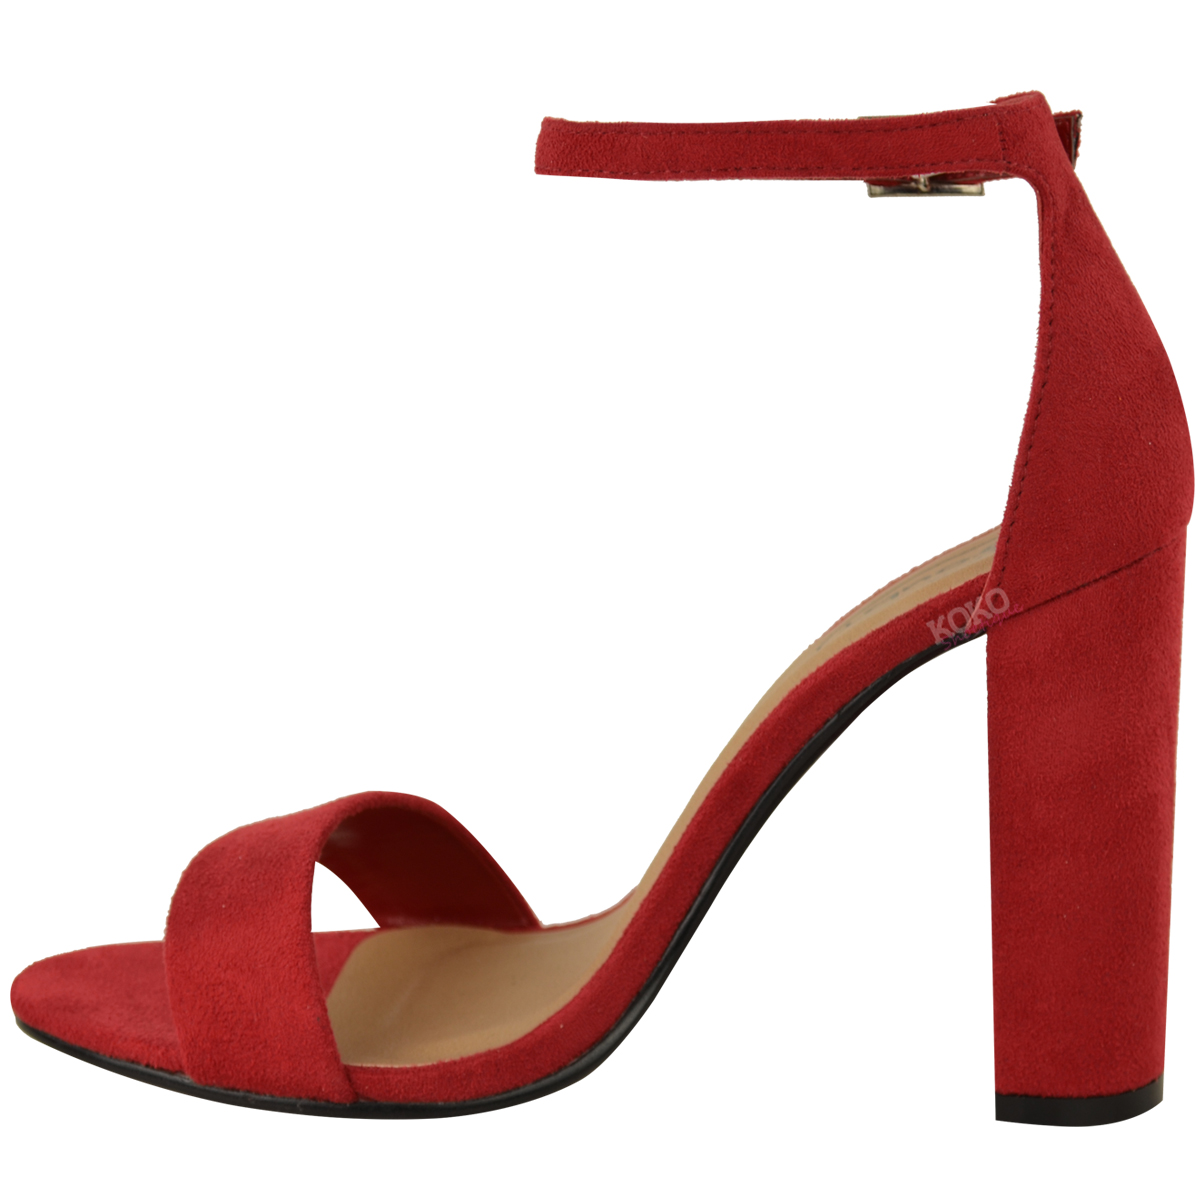 Womens-Ladies-Block-High-Heels-Ankle-Strap-Sexy-Open-Toe-Sandals-Shoes-Size-New miniatuur 45